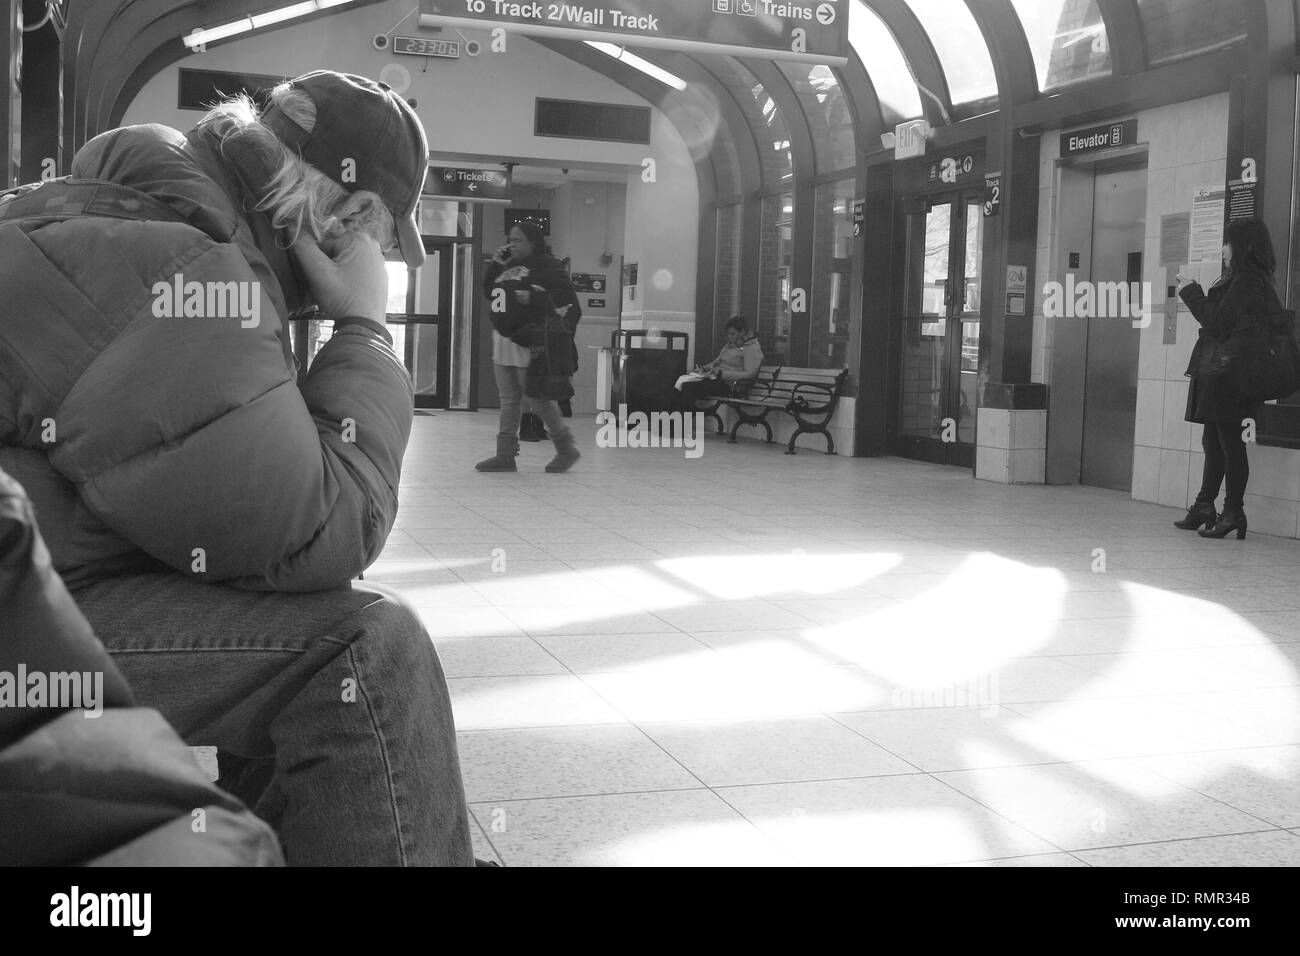 Lonely man in train station in Summit, New Jersey, seemingly forlorn. - Stock Image